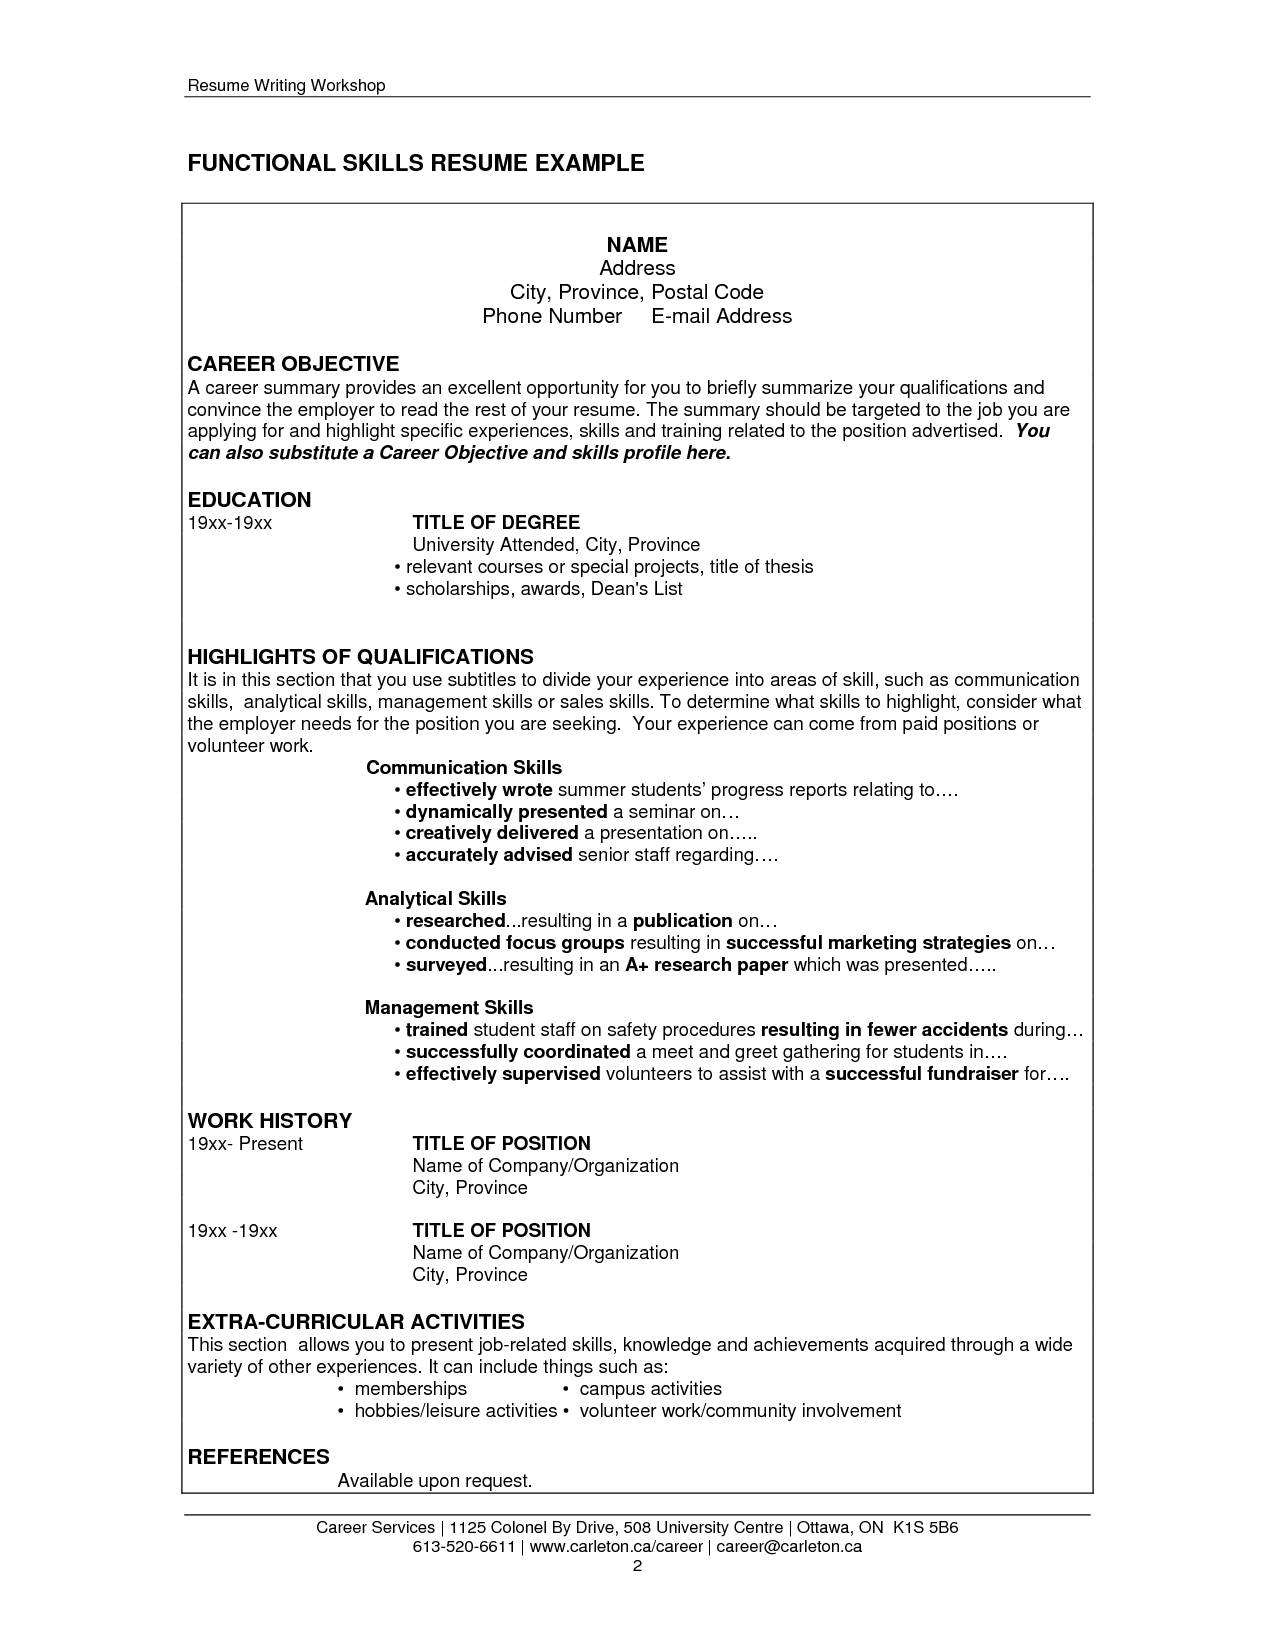 Qualifications For Resume Examples  Skills And Qualifications Examples